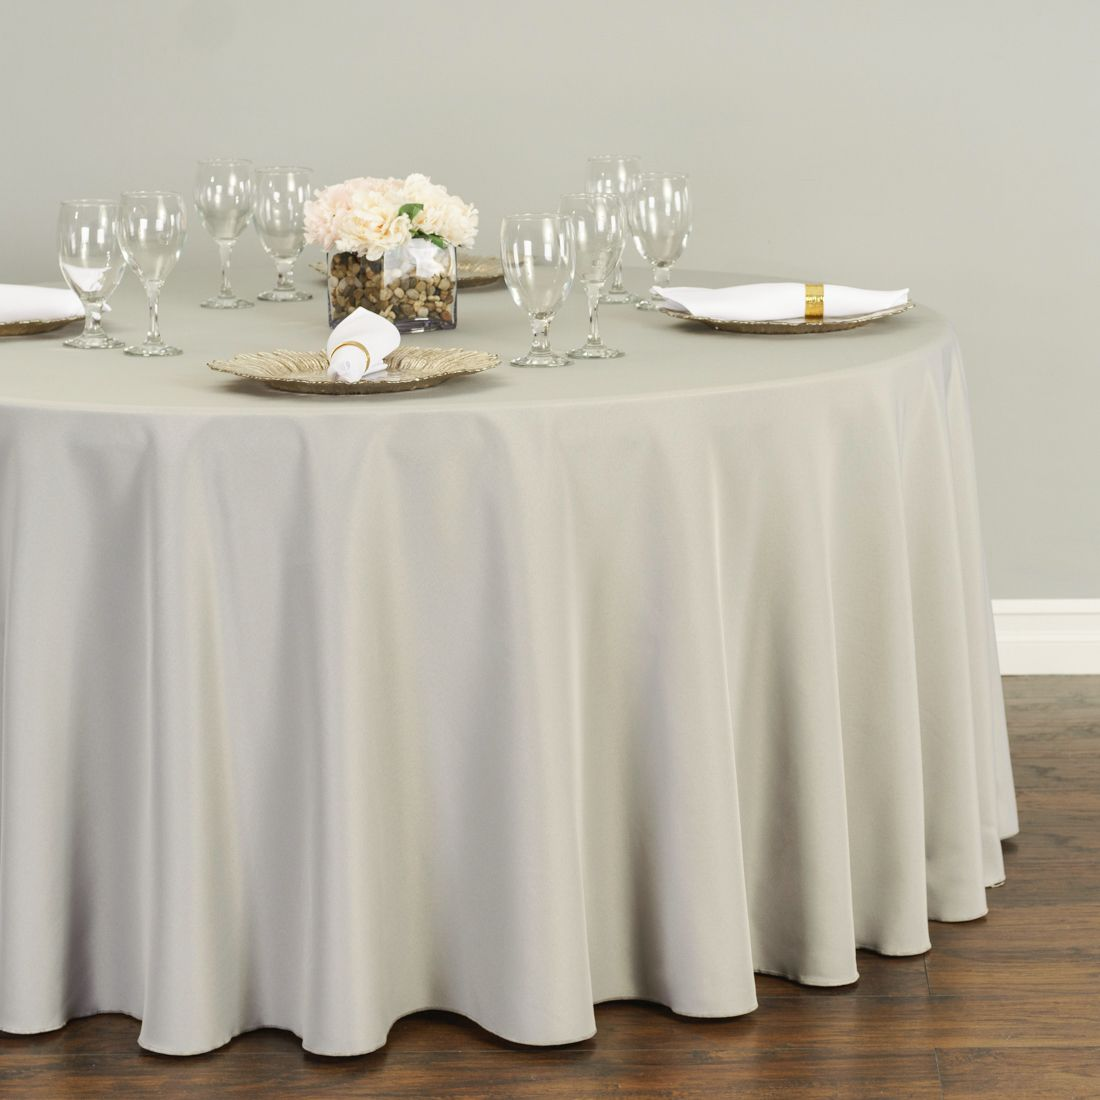 108 In Round Polyester Tablecloth Round Tablecloth Table Cloth Wedding Tablecloths